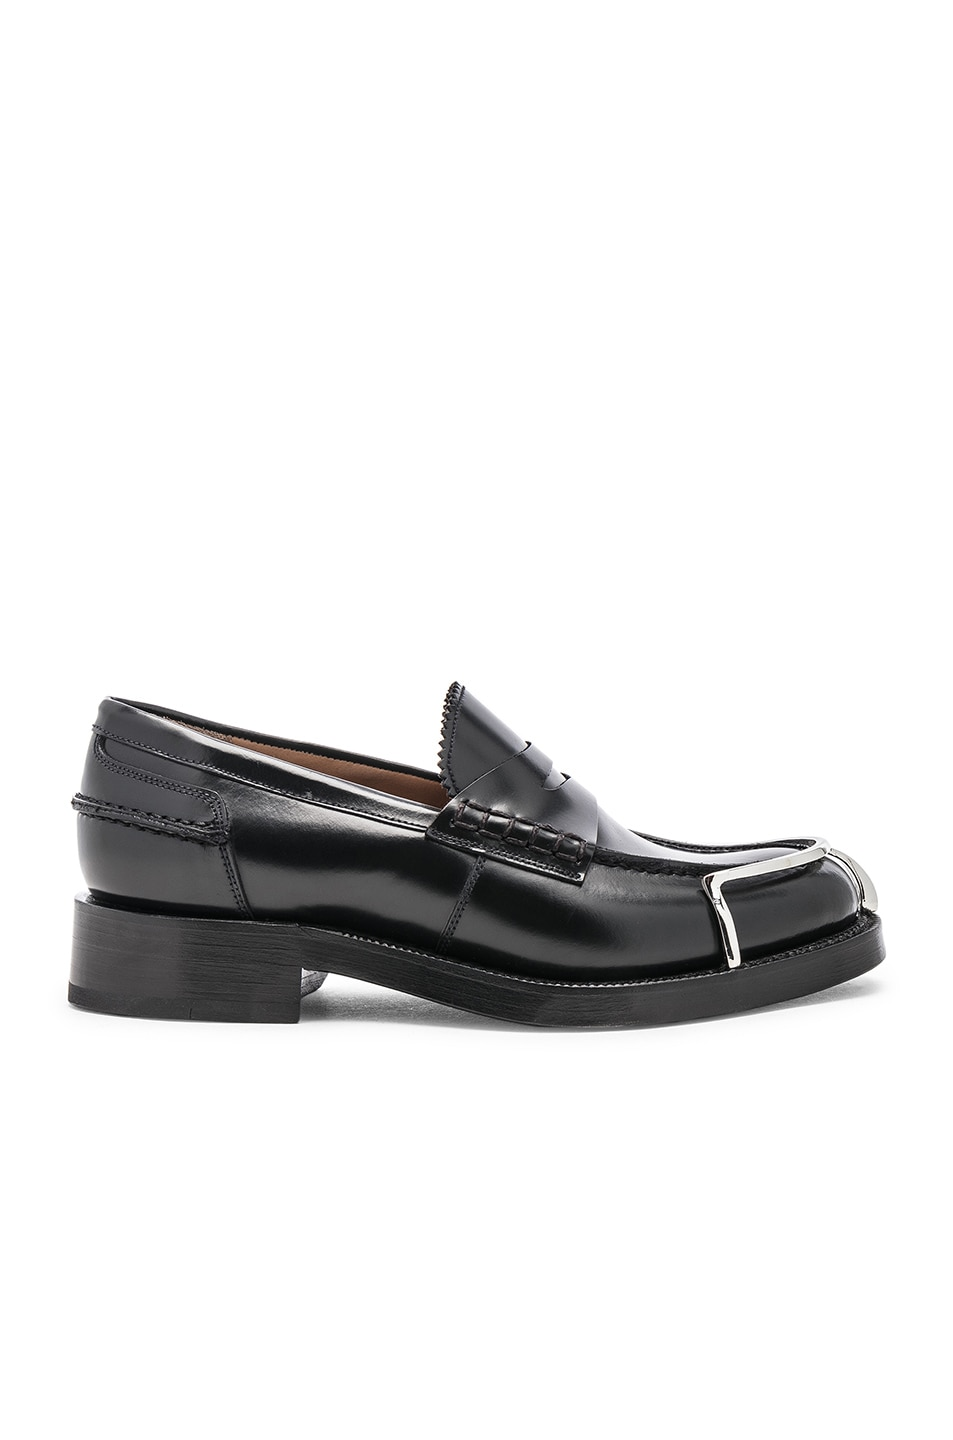 Image 1 of Alexander Wang Carter Spazzolato Loafer in Black